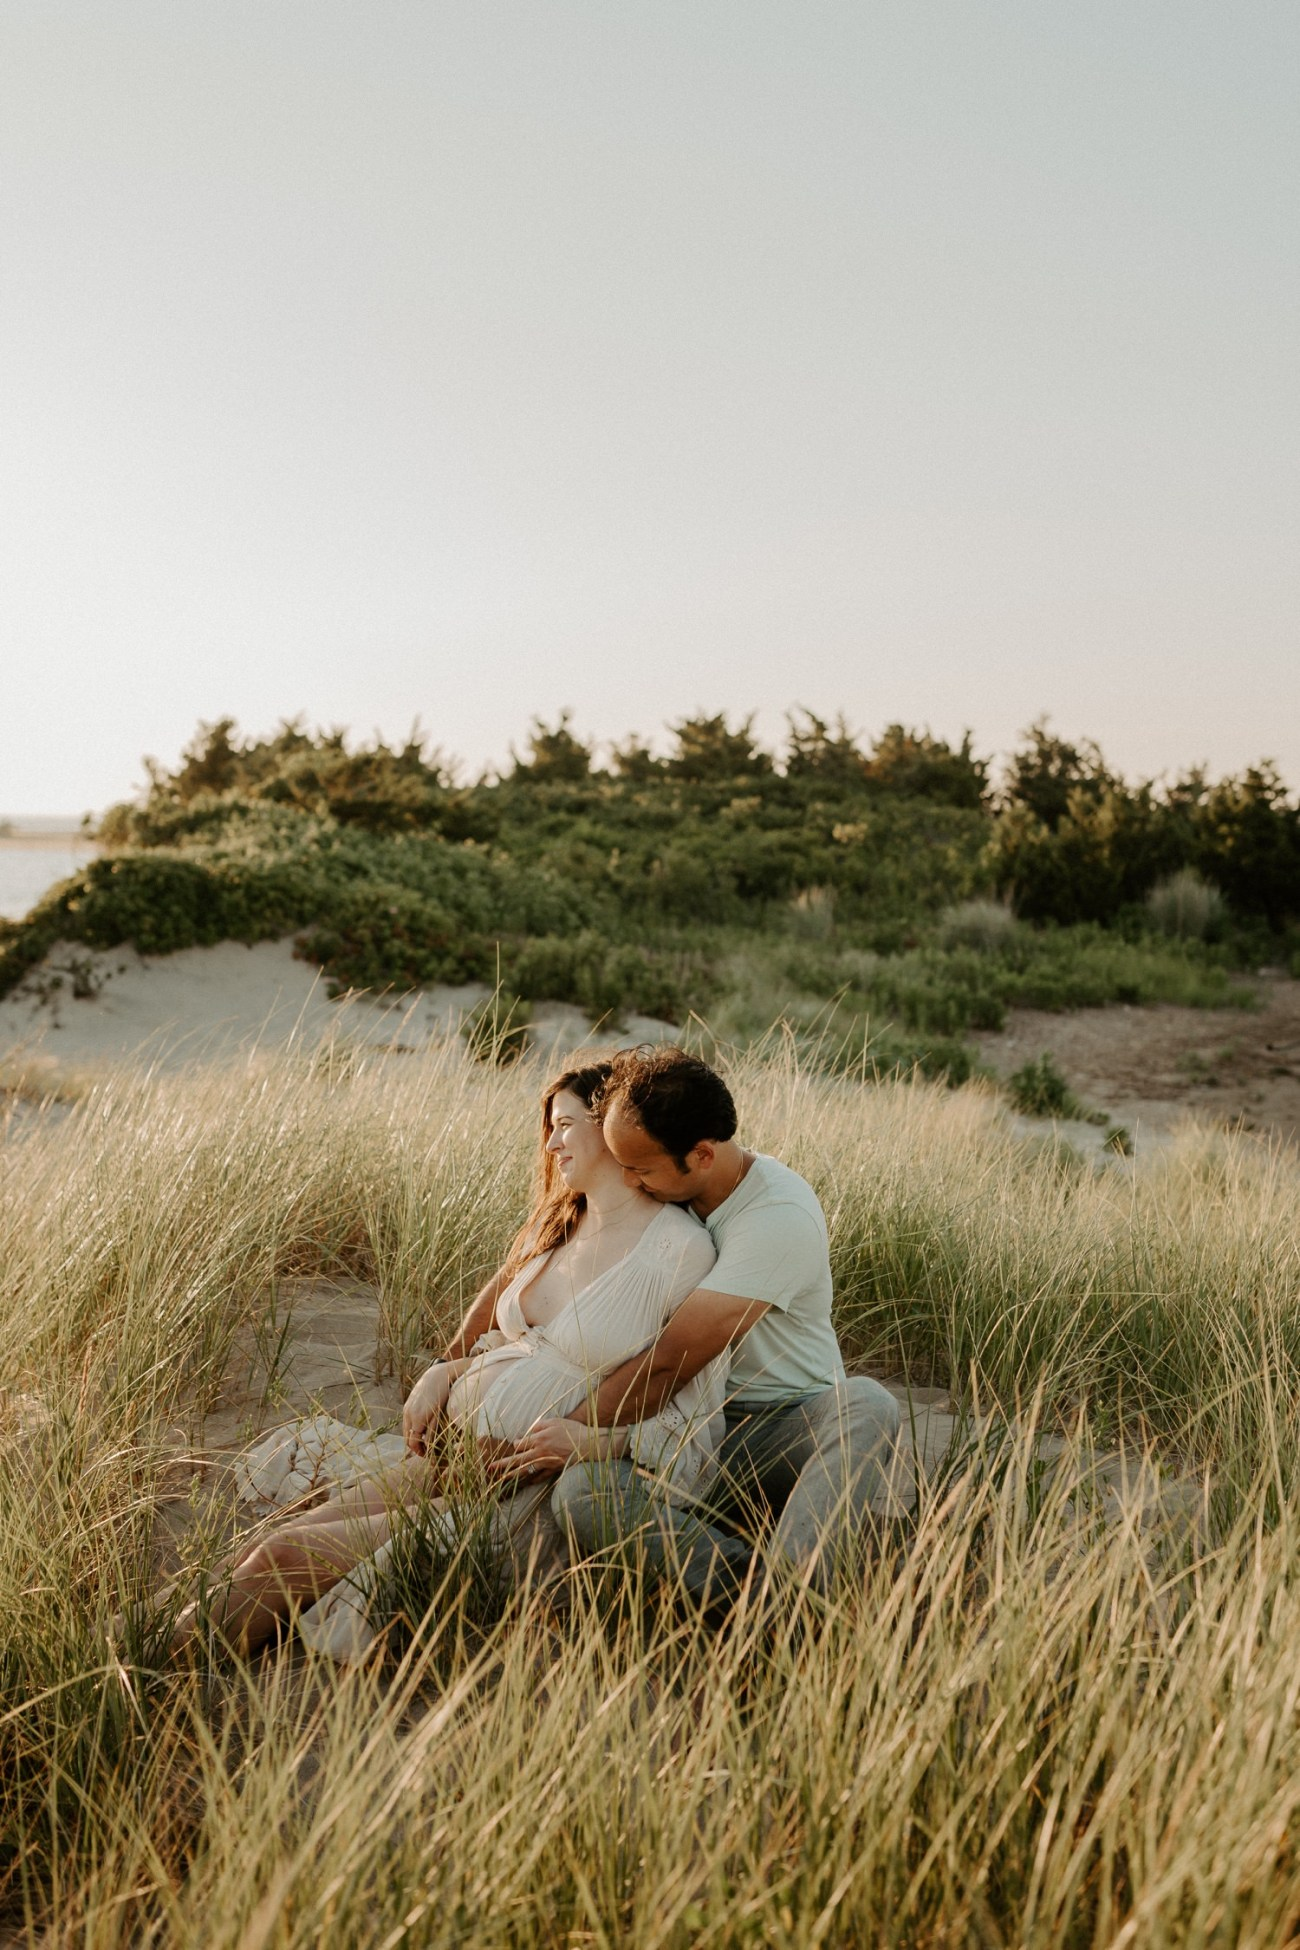 Sandy Hook Maternity Session Oregon Coast Couple Session Oregon Wedding Photographer Bend Wedding Photographer Anais Possamai Photography 002